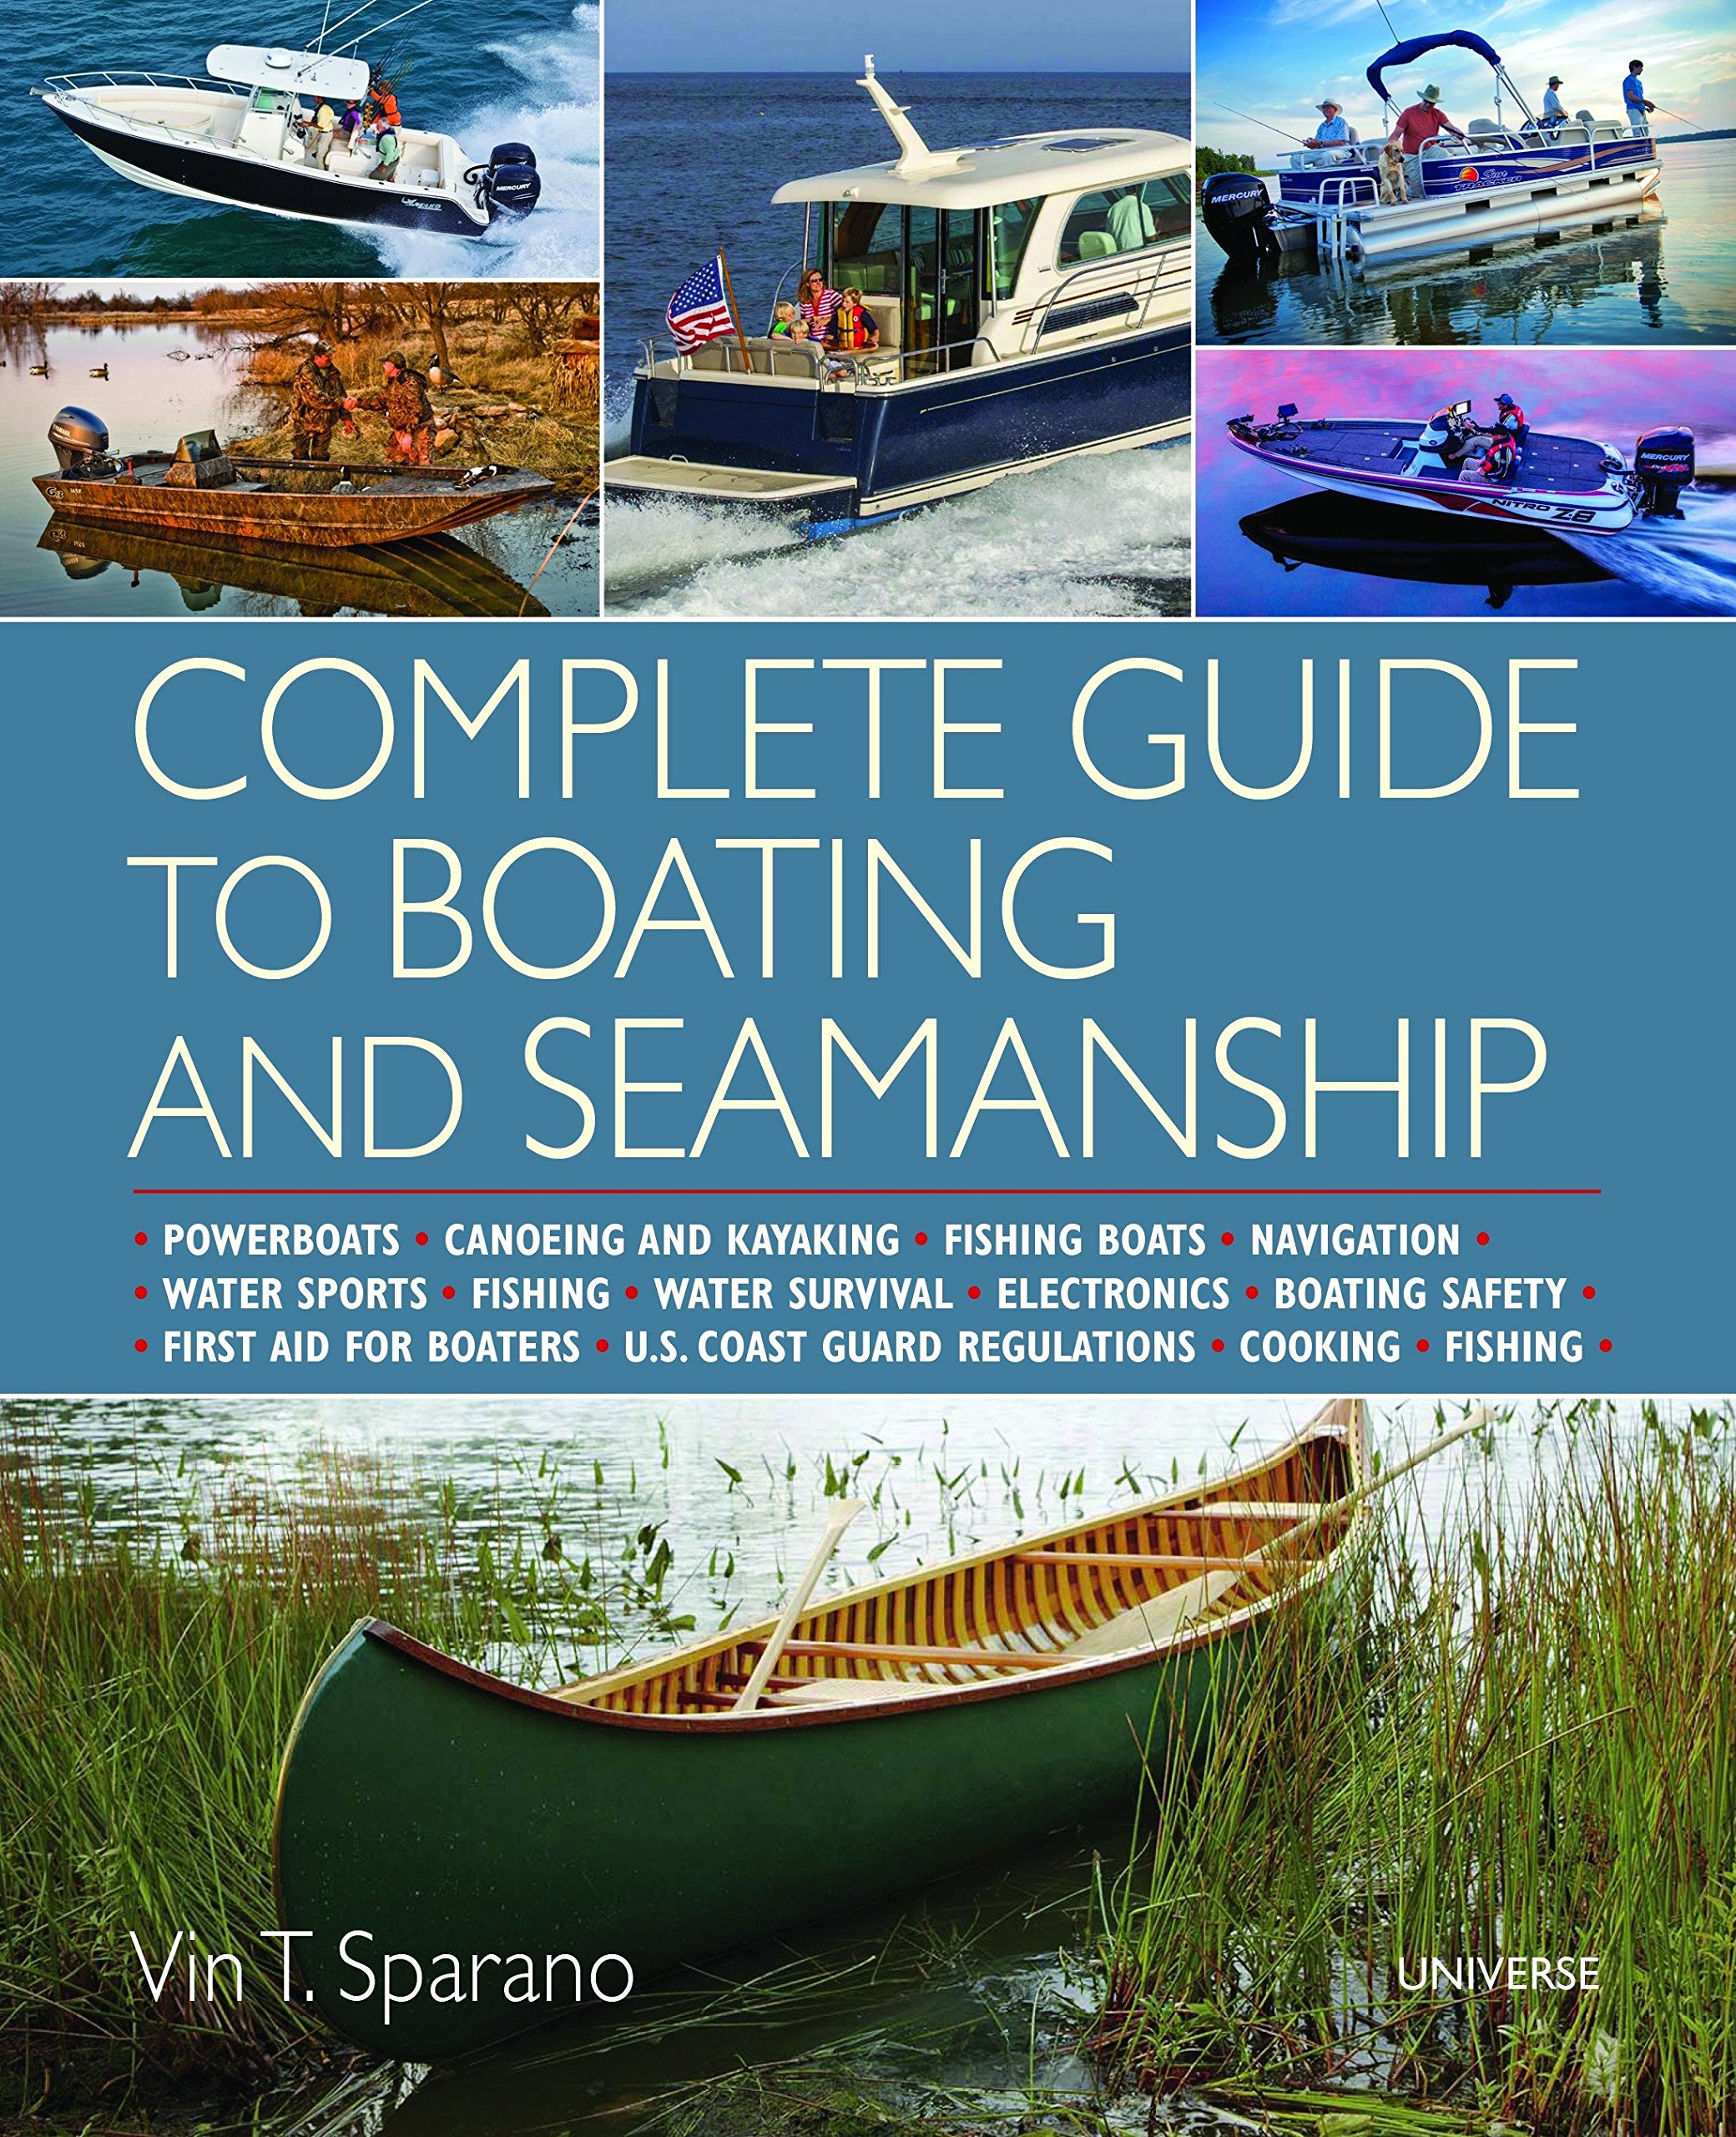 Complete Guide to Boating and Seamanship: Powerboats - Canoeing and Kayaking - Fishing Boats - Navigation - Water Sports - Fishing - Water Survival - ... - Boating Safety - First Aid For Boaters pdf